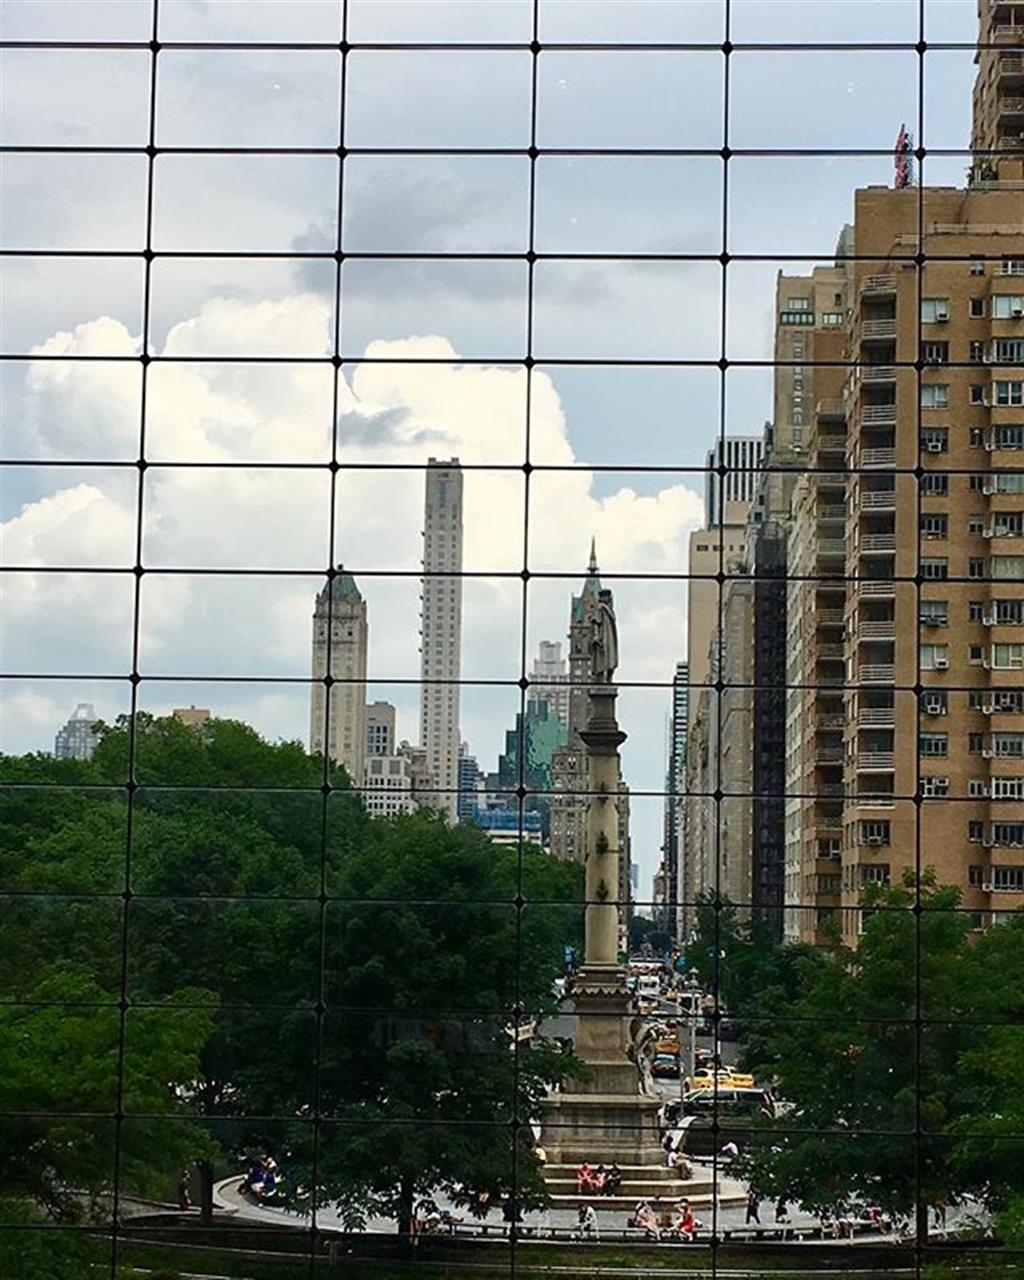 """View of Columbus Circle from Time Warner Center From the Series """"""""This is my Town"""""""" (iPhone shots) Da S├®rie """"""""Minha Cidade"""""""" Photo: Wigder Frota #thisismytown #minhacidade #columbuscircle #newyork #nyc #ilovenewyork #homesweethome #leadingrelocal #exploreyourhood #halsteadproperty #travel #photography #instatravel #travelphoto #traveltheworld #travelphotography #wigderfrota #photobywigderfrota #travelpicsdaily #tourism #travelblog #travelgram #discover #discovery #nationalgeographic #lonelyplanet #sharetravelpics  #instadaily #instagood #instagram"""